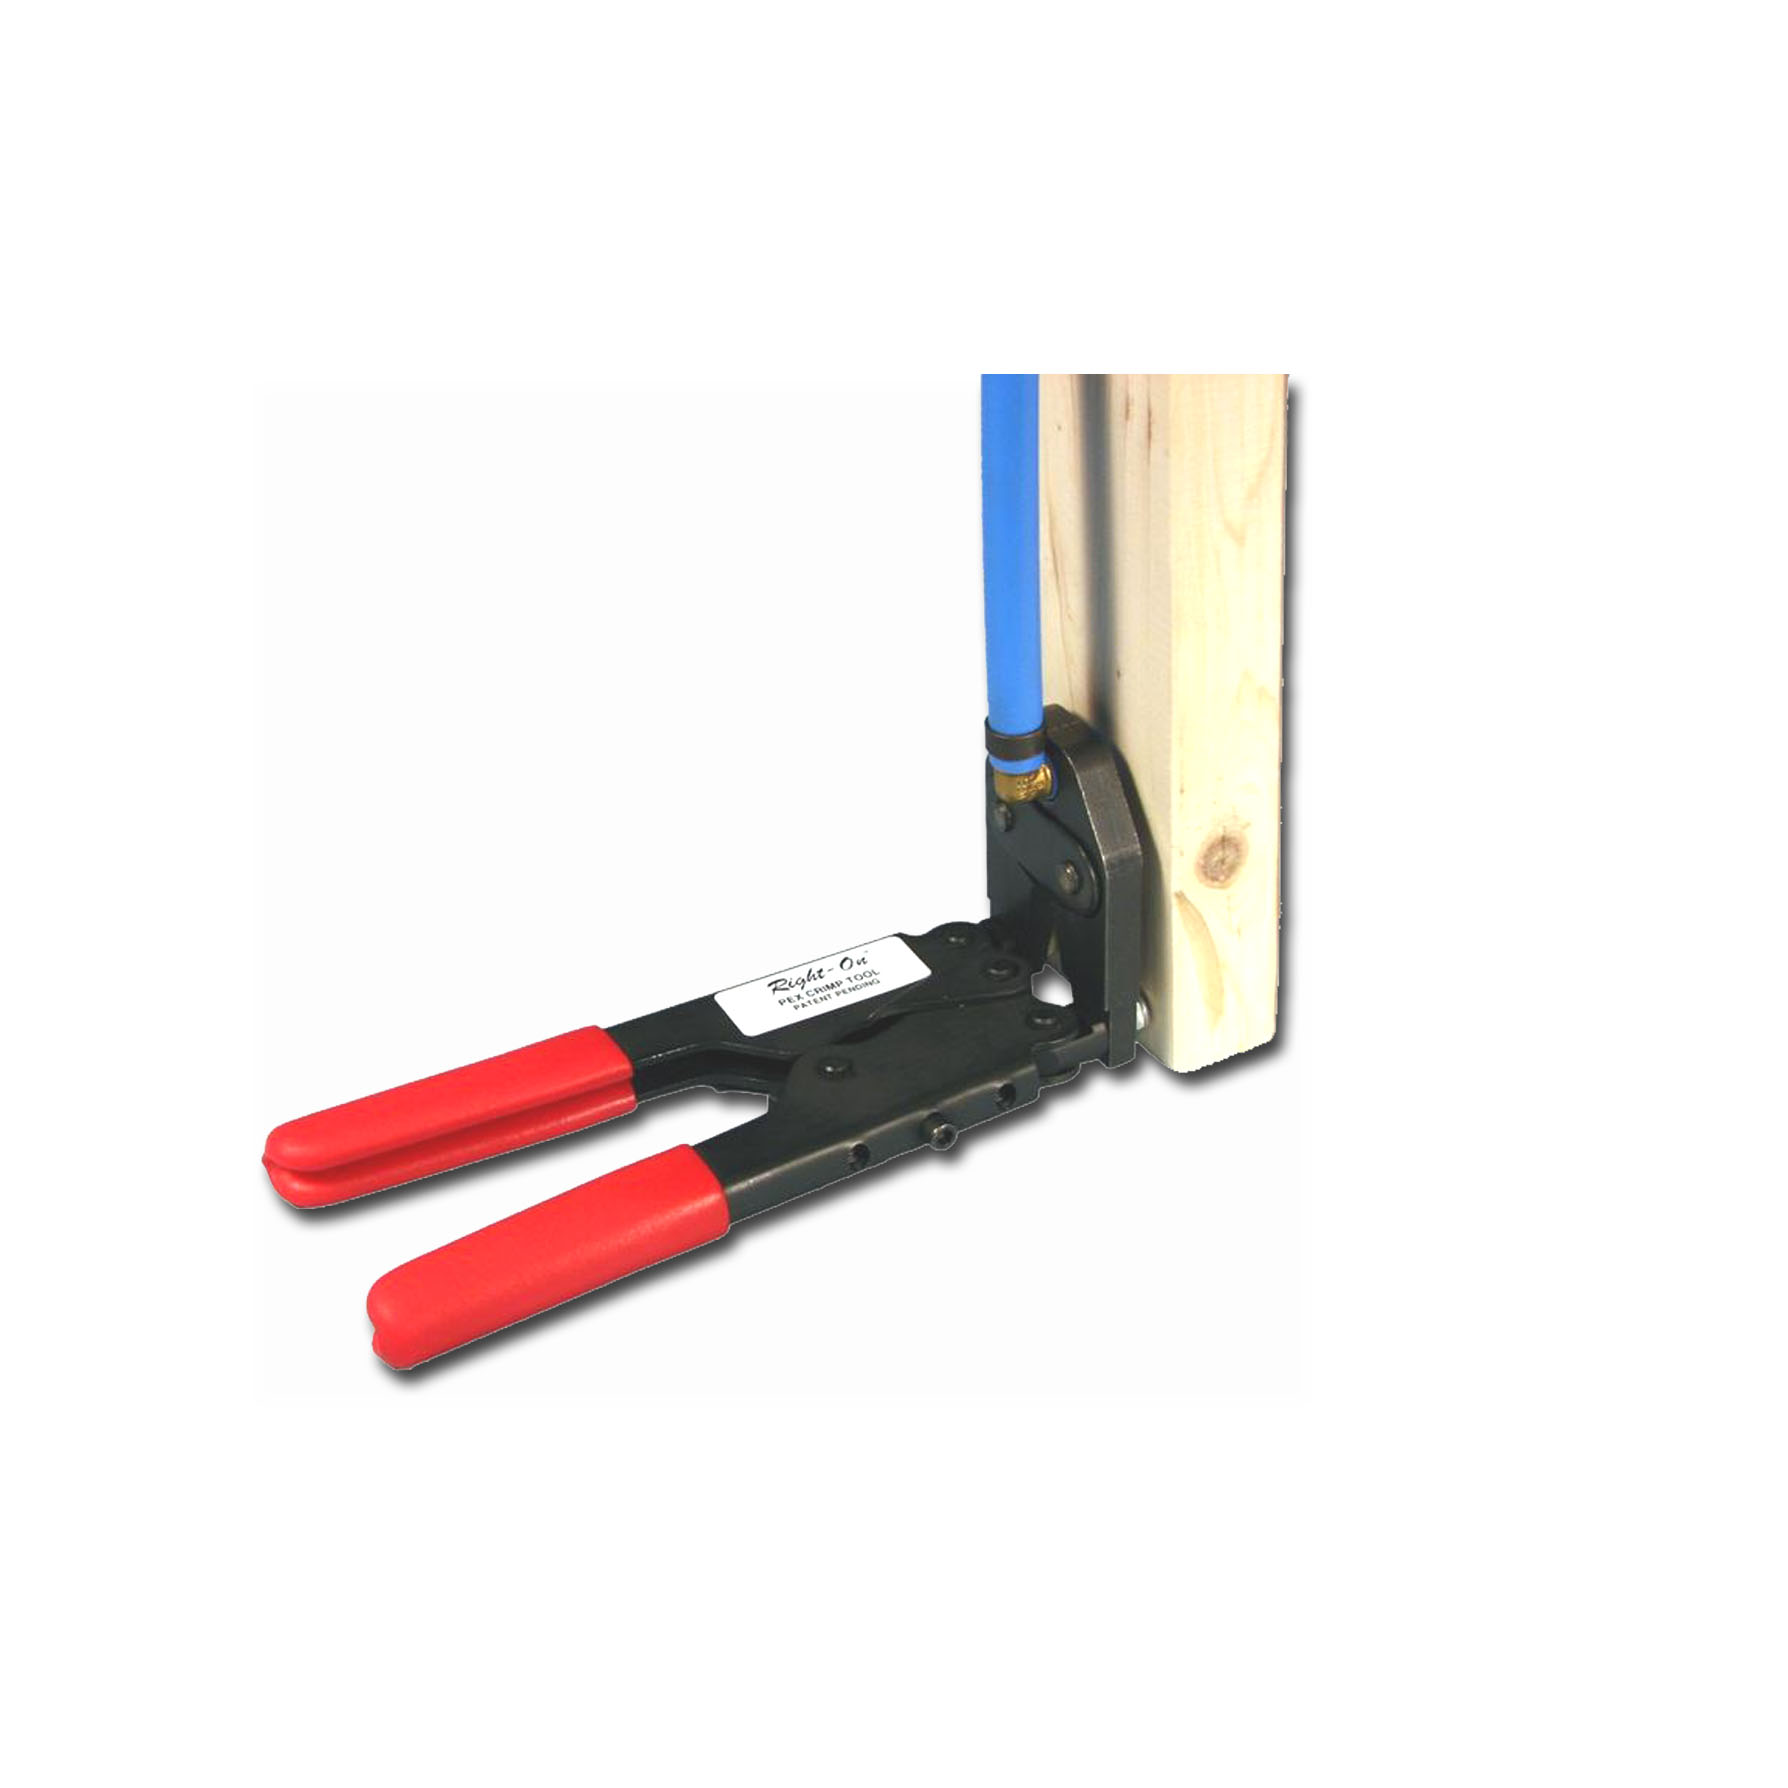 Right Angle RIGHT-ON Crimp Tools  sc 1 st  SARGENT Tools & Right Angle RIGHT-ON Crimp Tools | SARGENT Tools